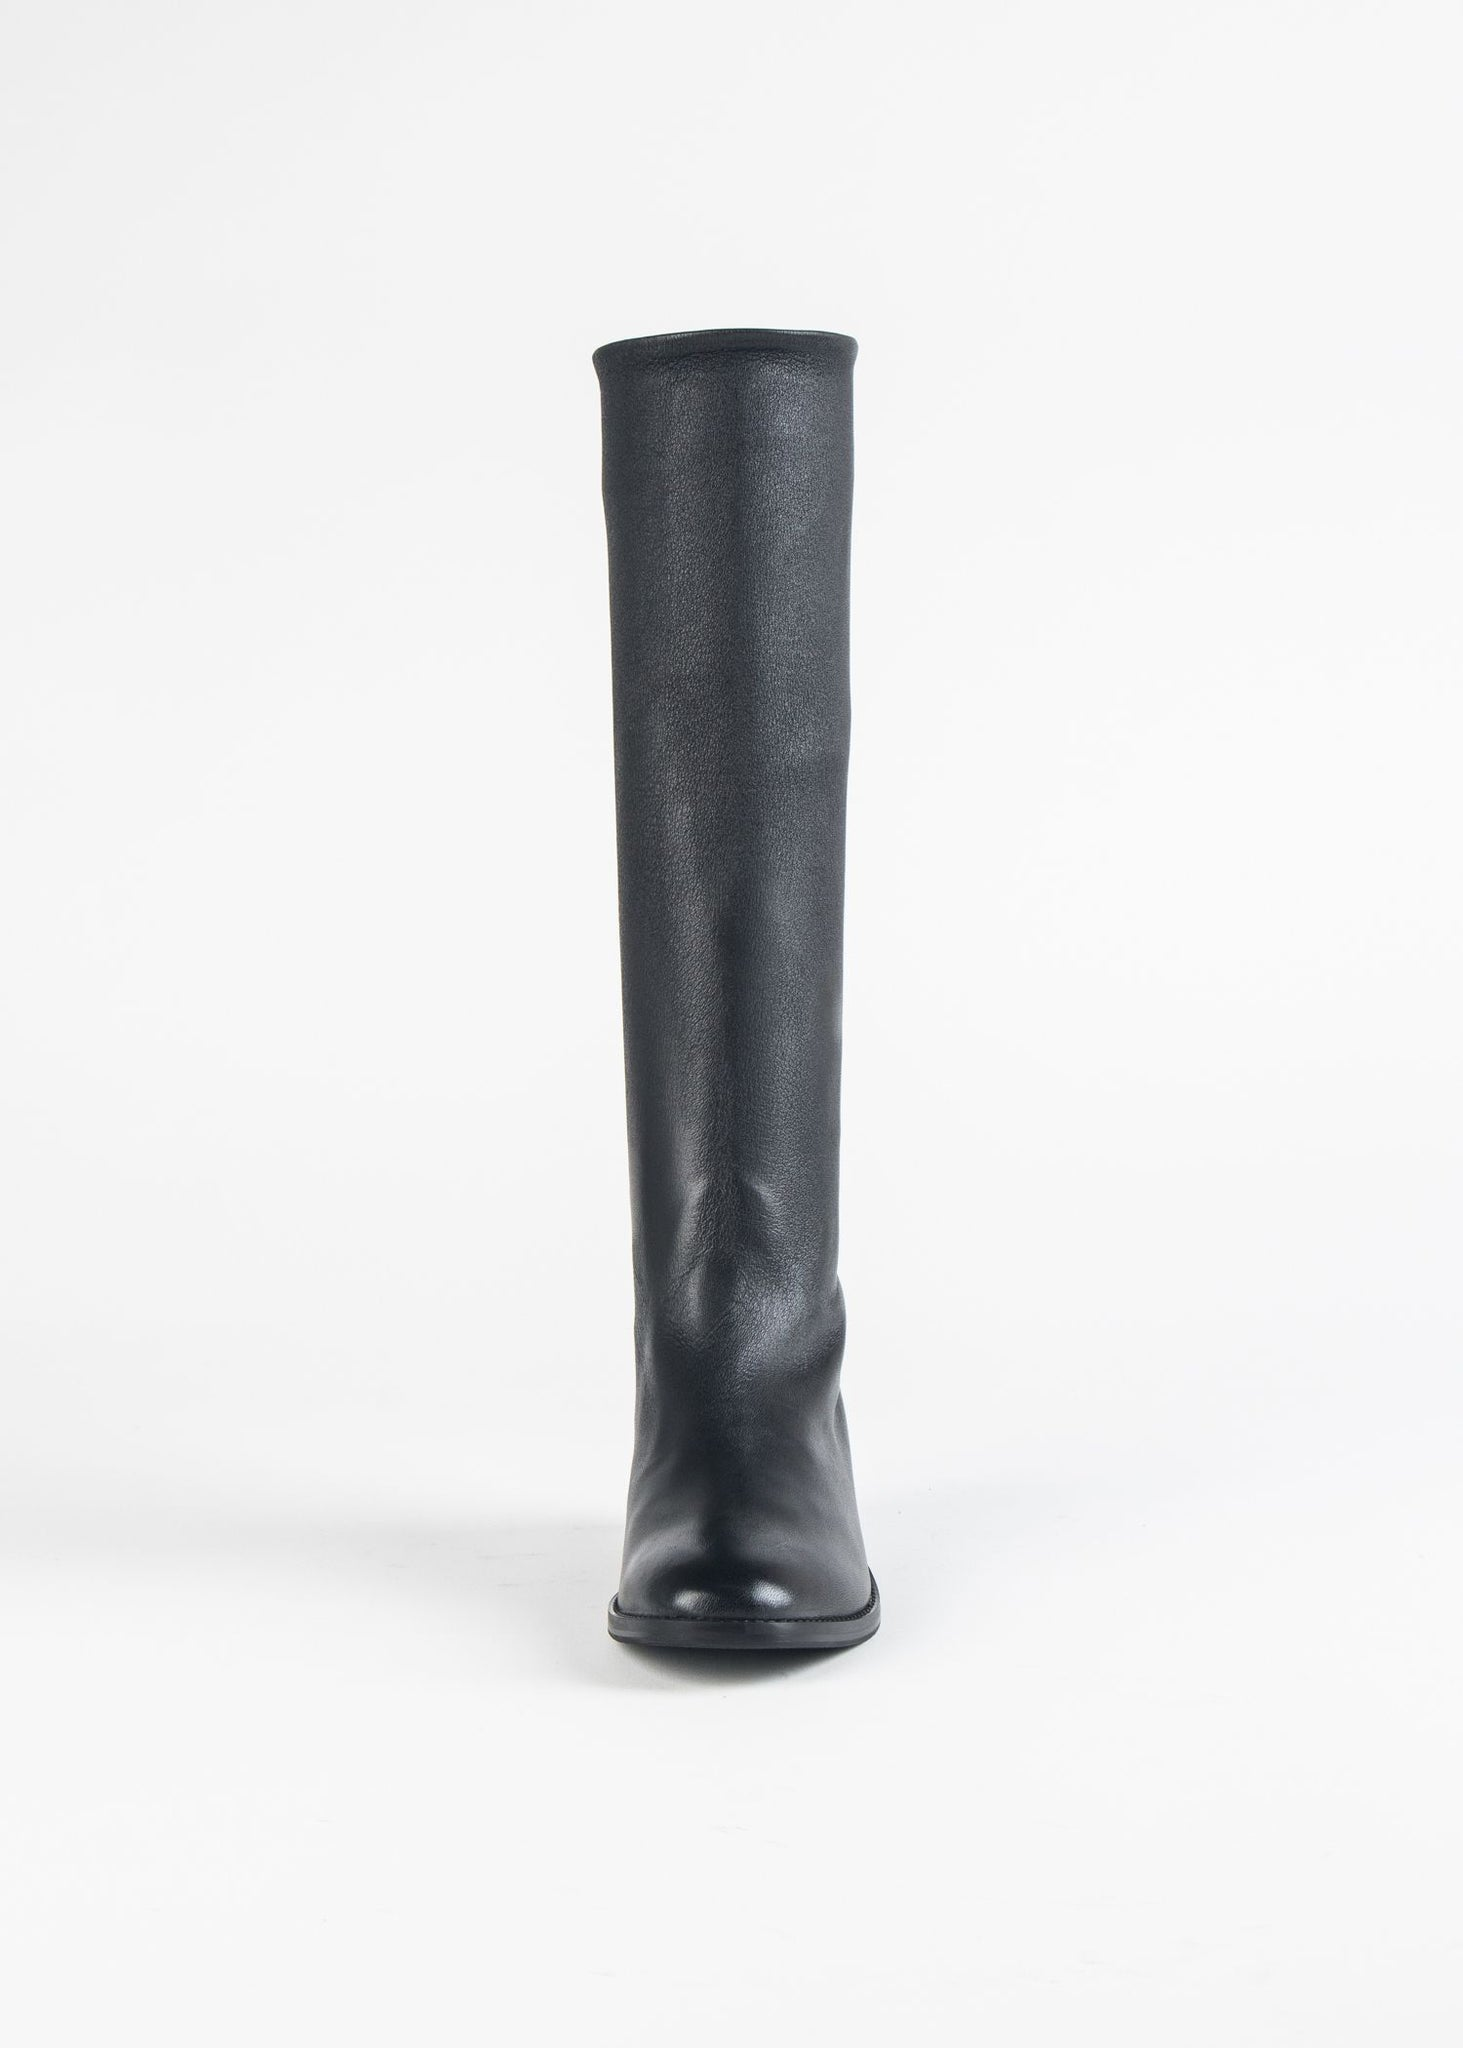 INTERIOR WEDGE KNEE HIGH BOOT